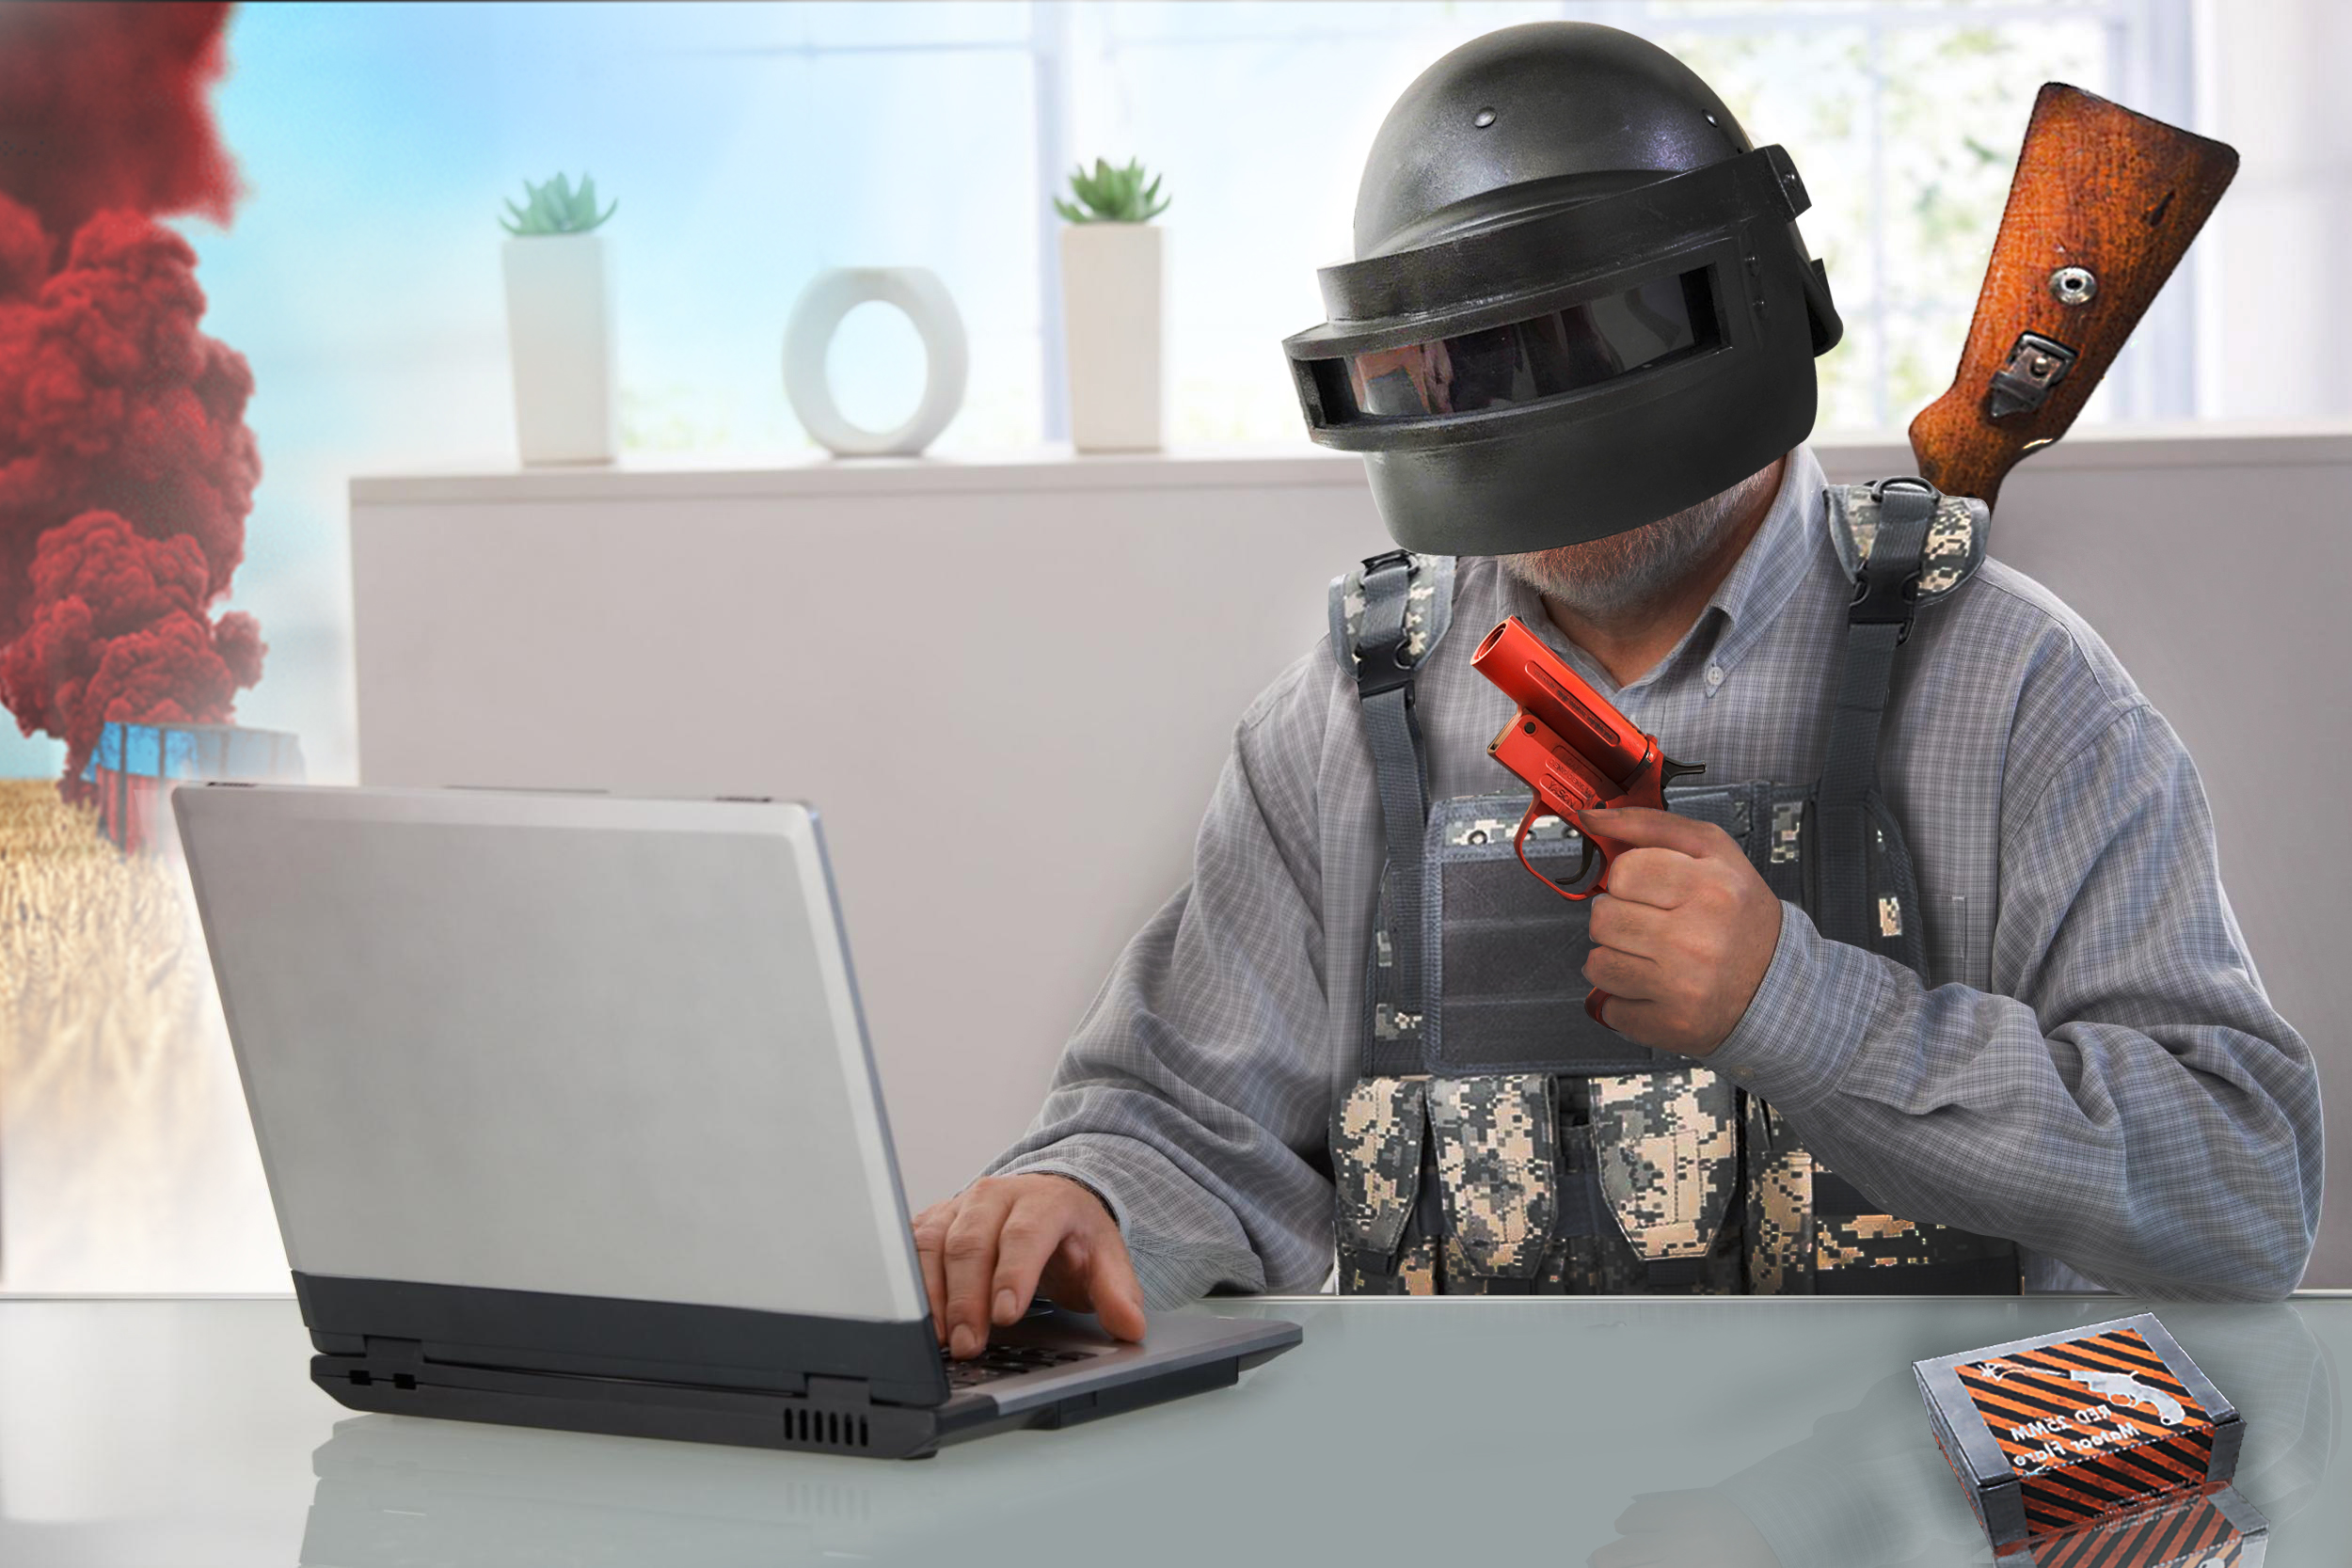 1920x1080 PUBG Helmet Guy Working Laptop Full HD 1080P HD